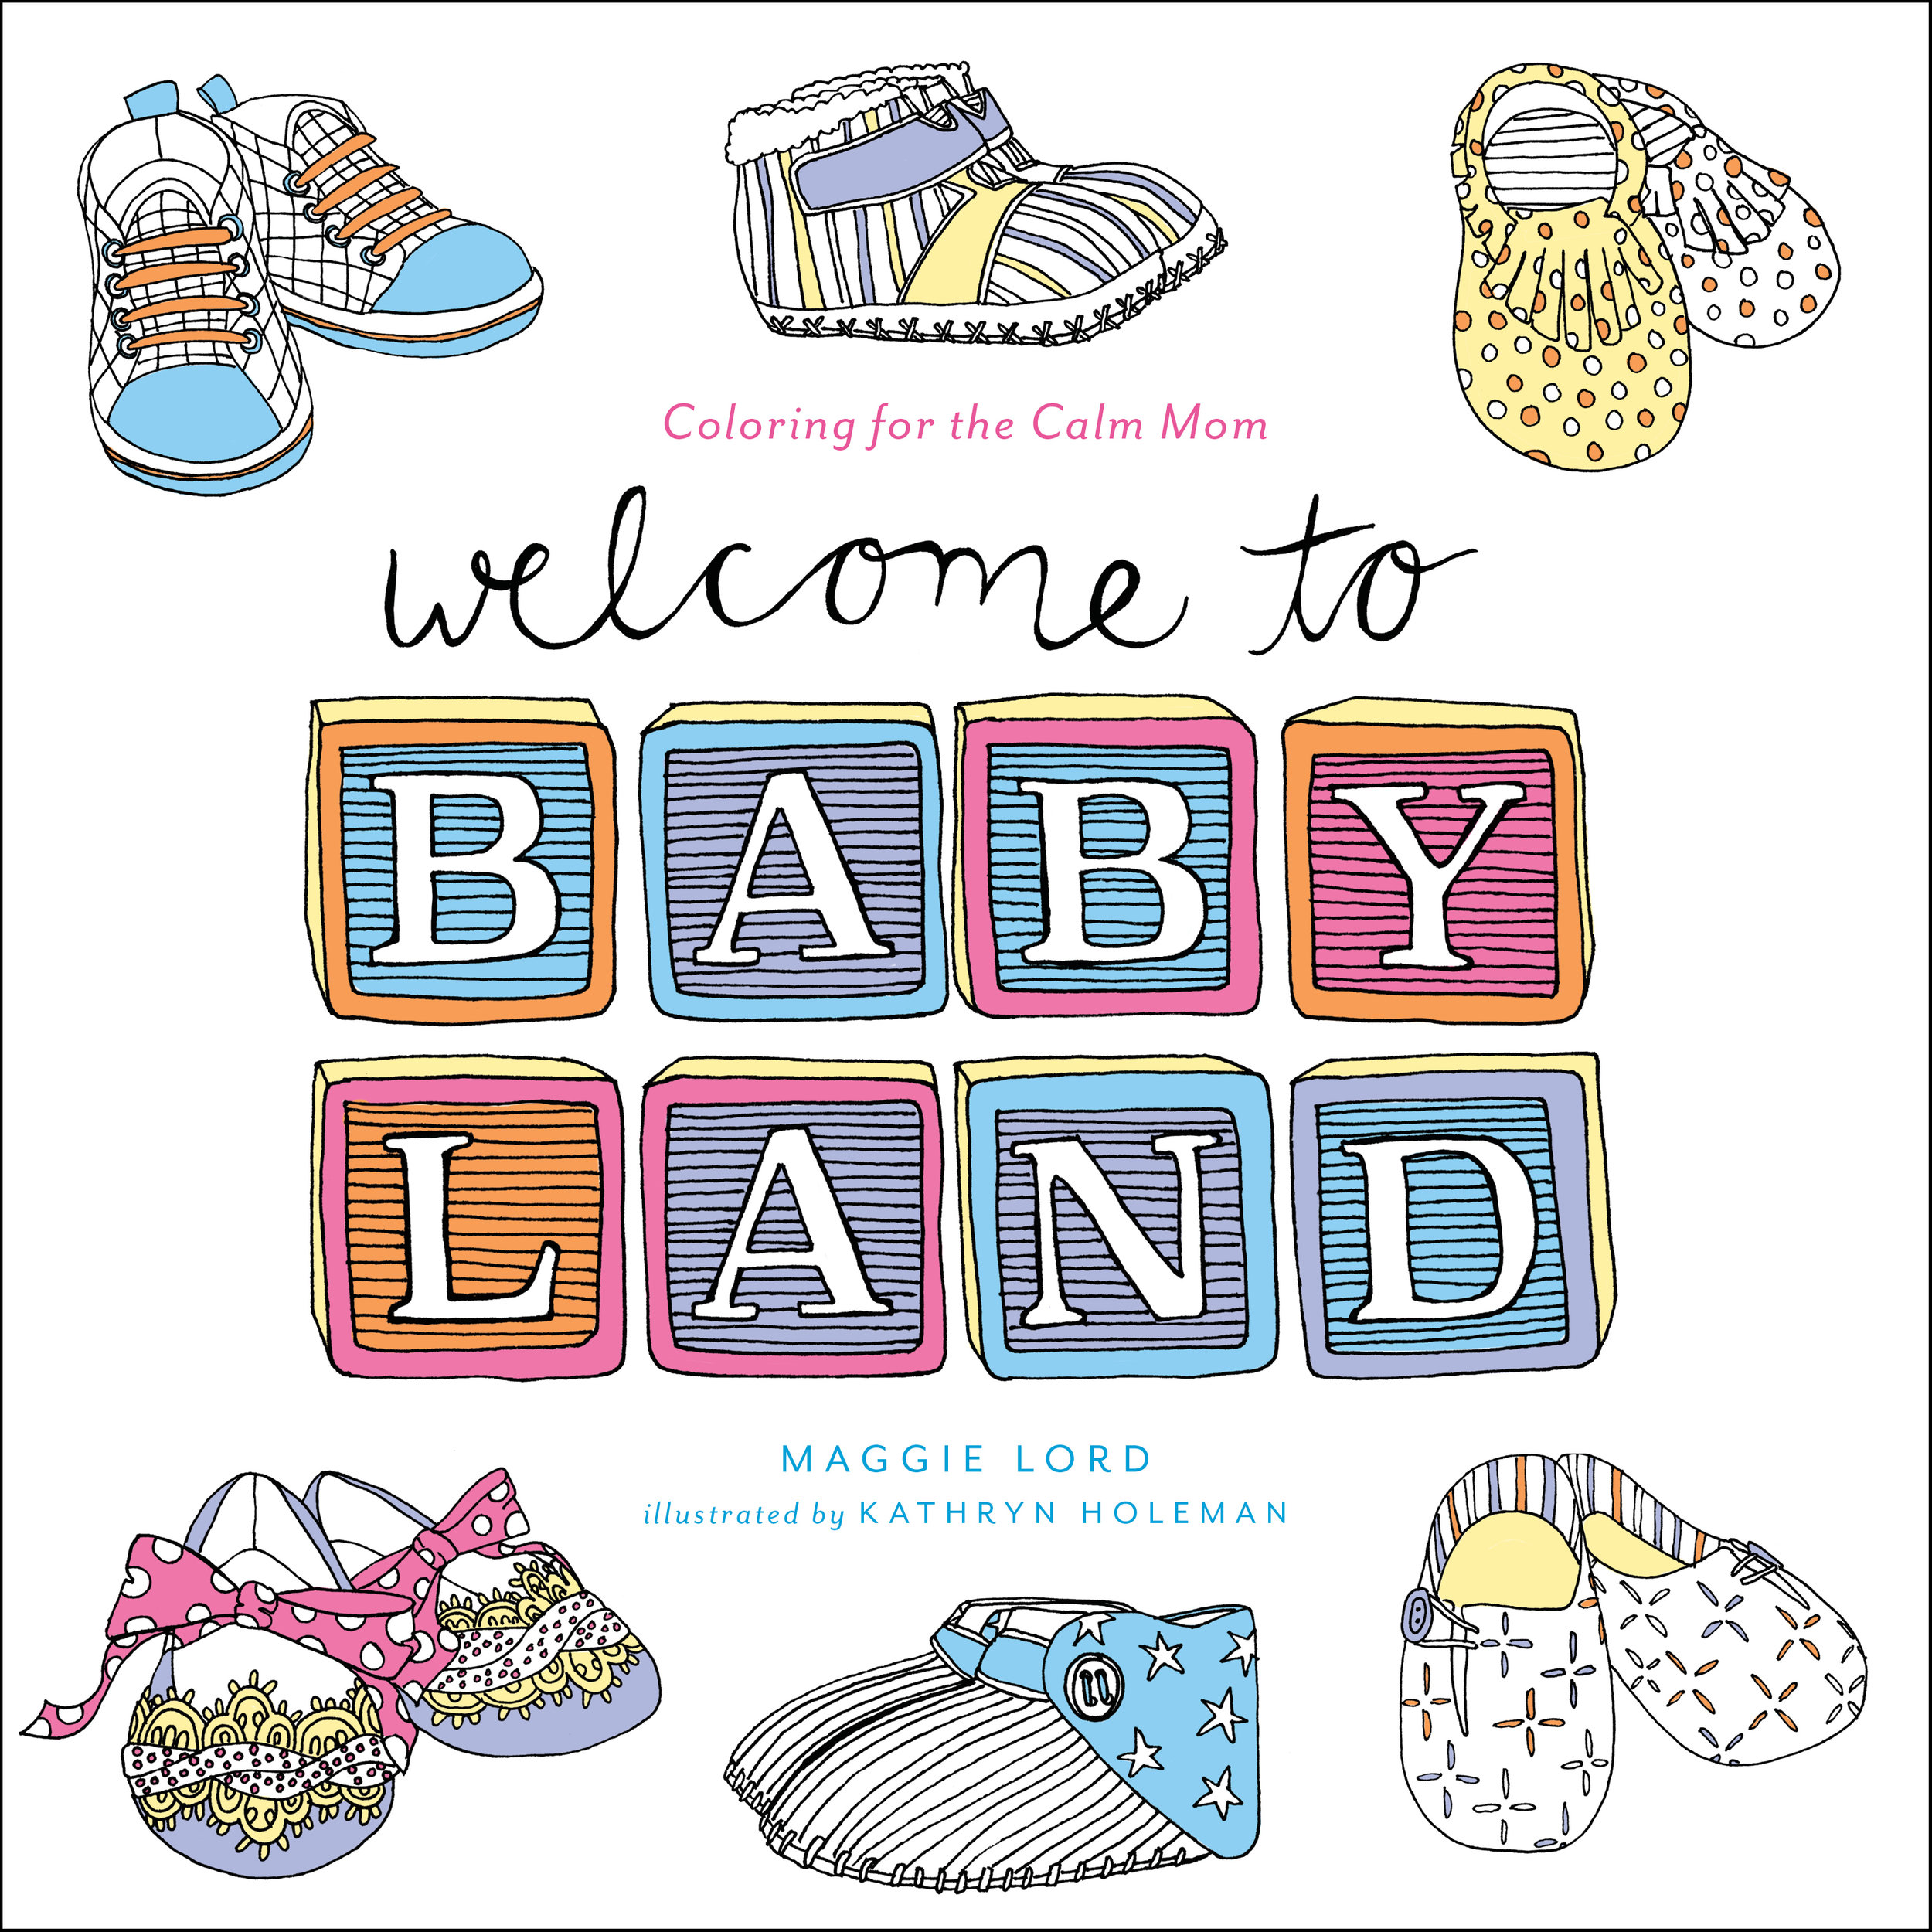 Welcome To Baby Land    Publisher: Little, Brown and Company  Date: 2016